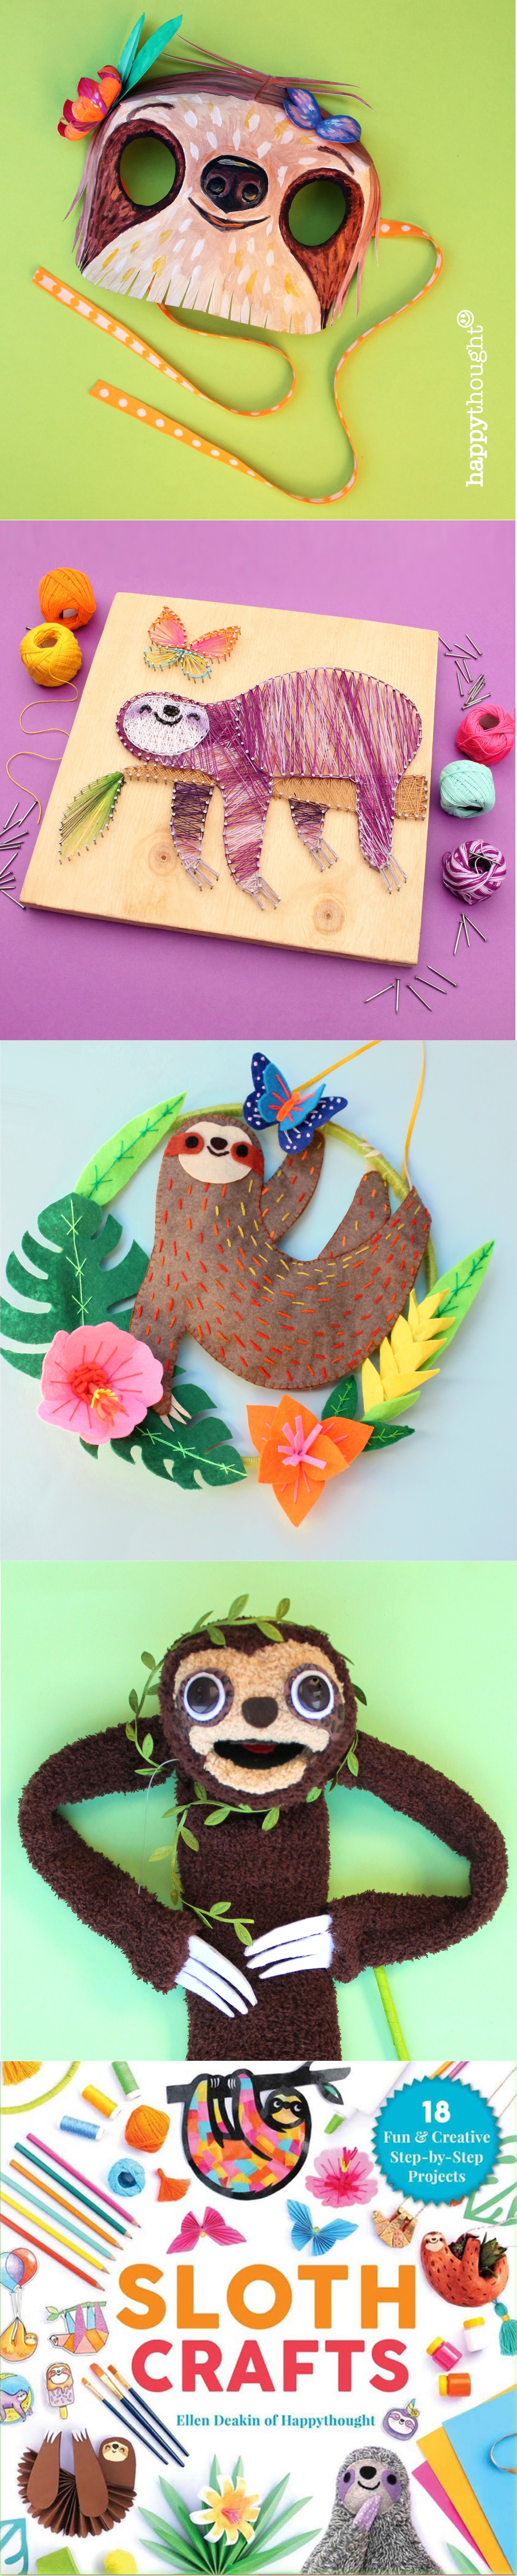 Sloth Crafts: 18 fun sloth craft projects to inspire your creativity! Sloth Crafts by Ellen Deakin of Happythought - a brand new craft book full of DIY Sloth Crafts! Includes sloth pinata, sloth planter, sloth wall art, sloth plush, sloth pin brooches, sloth necklace charm, sloth pops, sloth puppet, sloth mask and more!